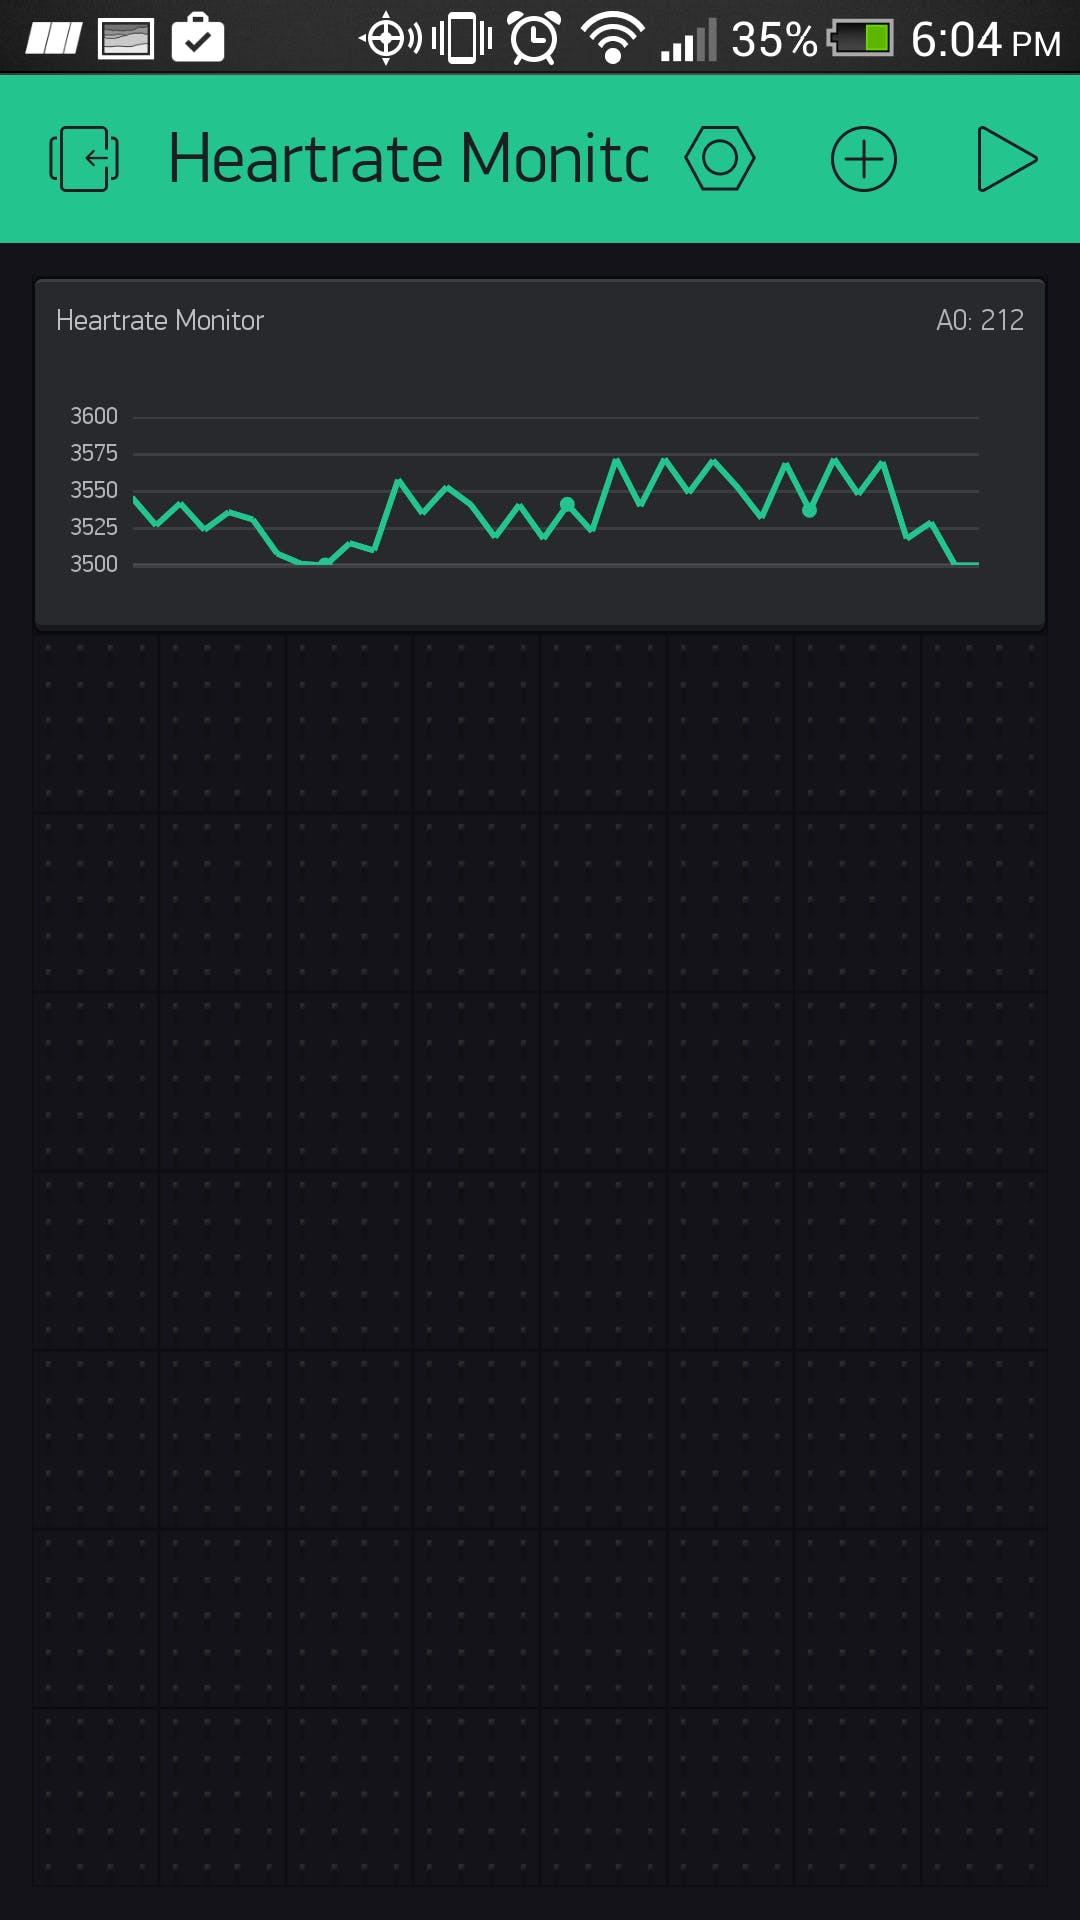 Figure 3: Shows the graph in the blynk app with my finger on the sensor